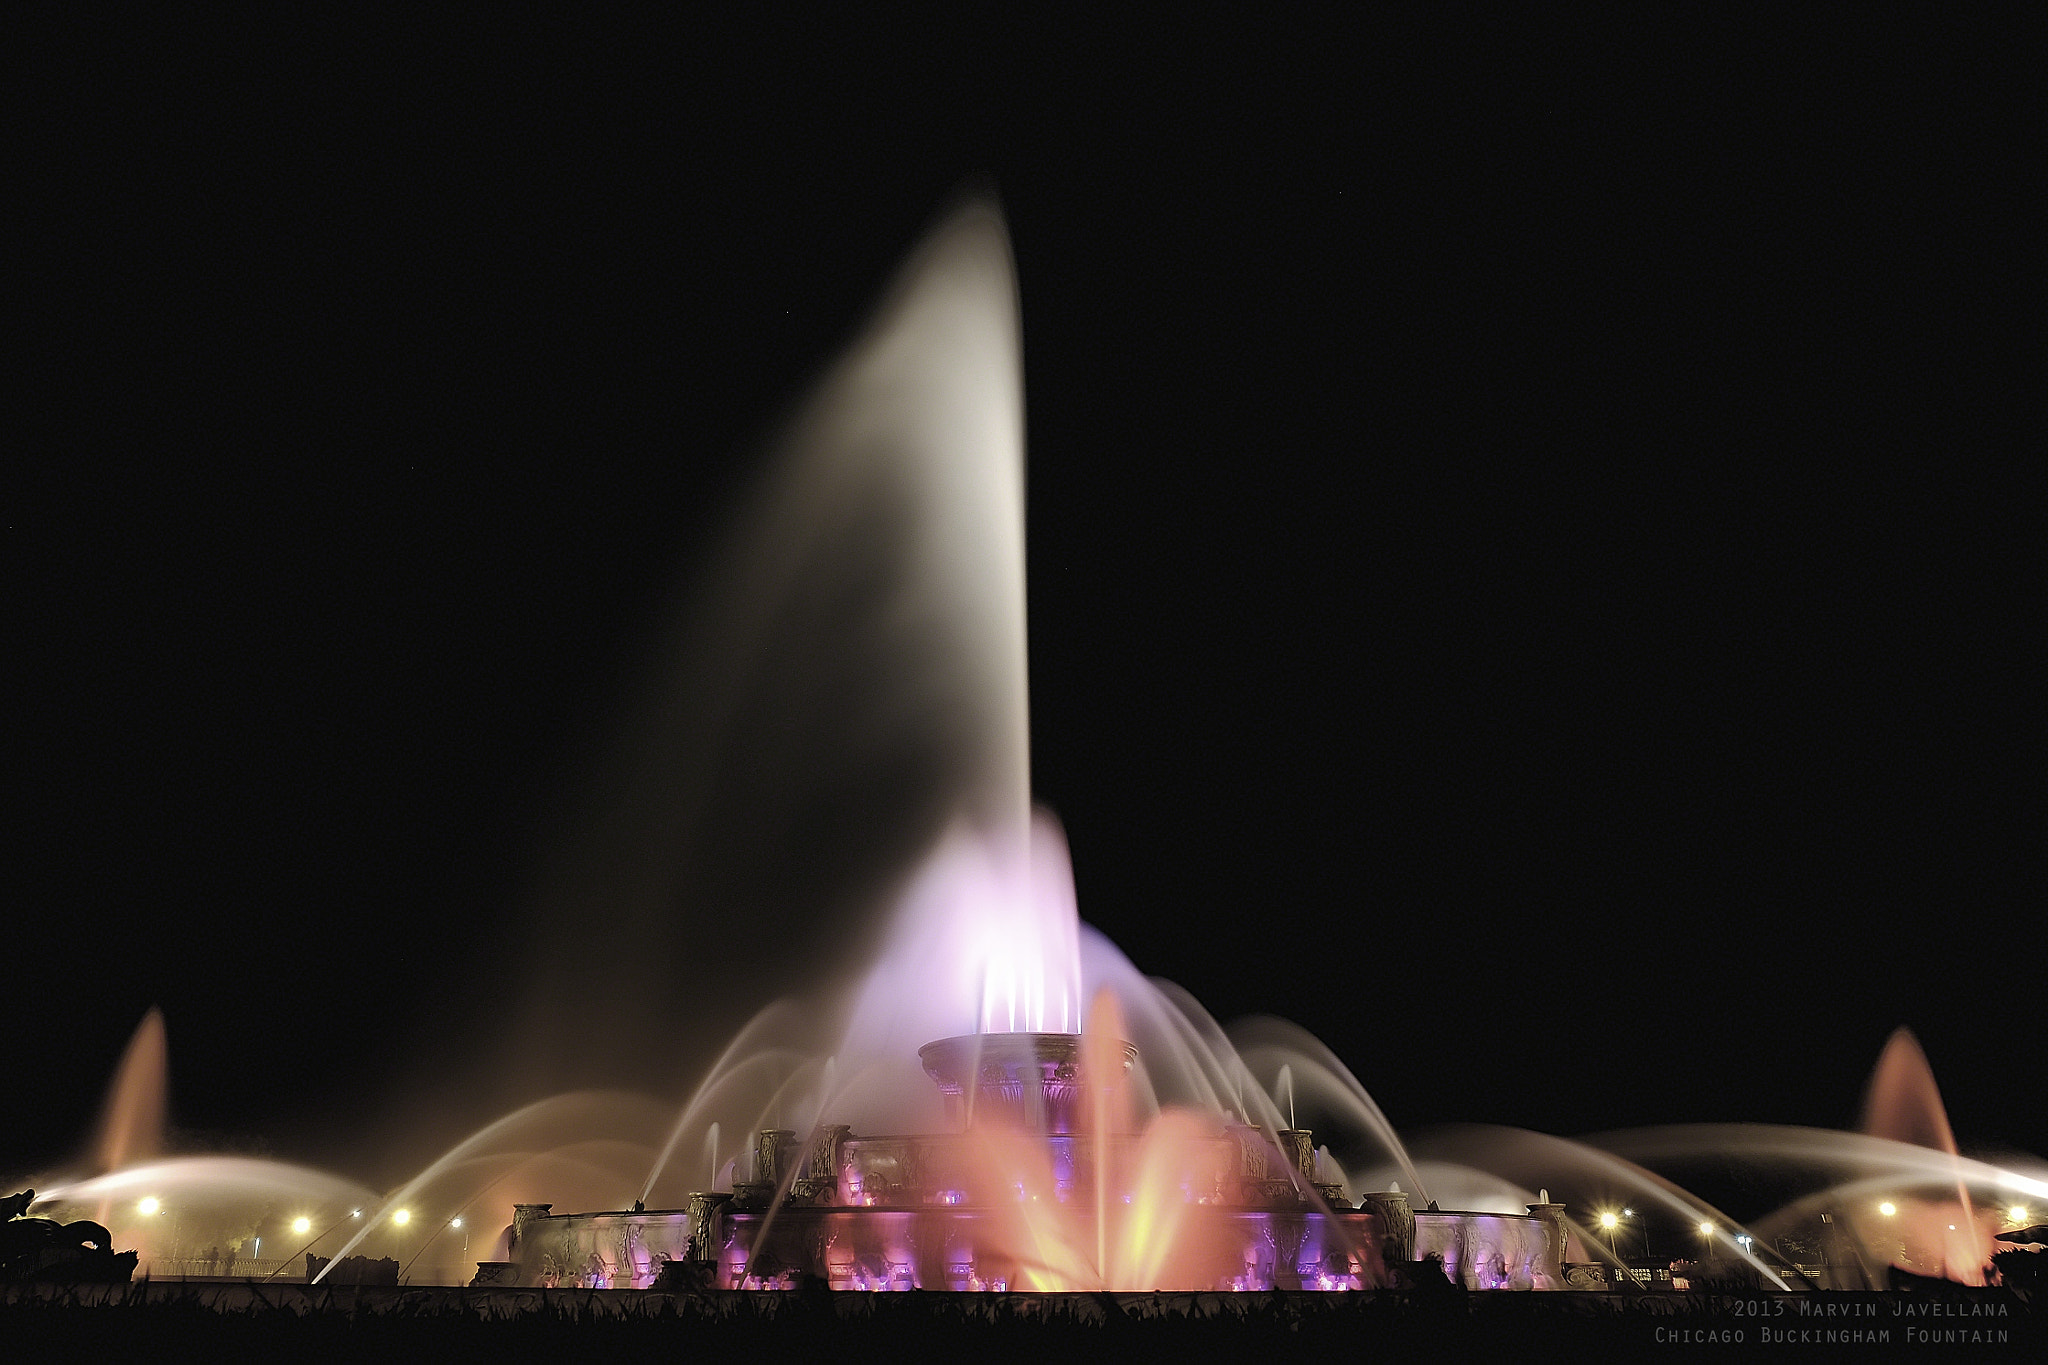 Photograph Chicago's Buckingham Fountain by Marvin Javellana on 500px